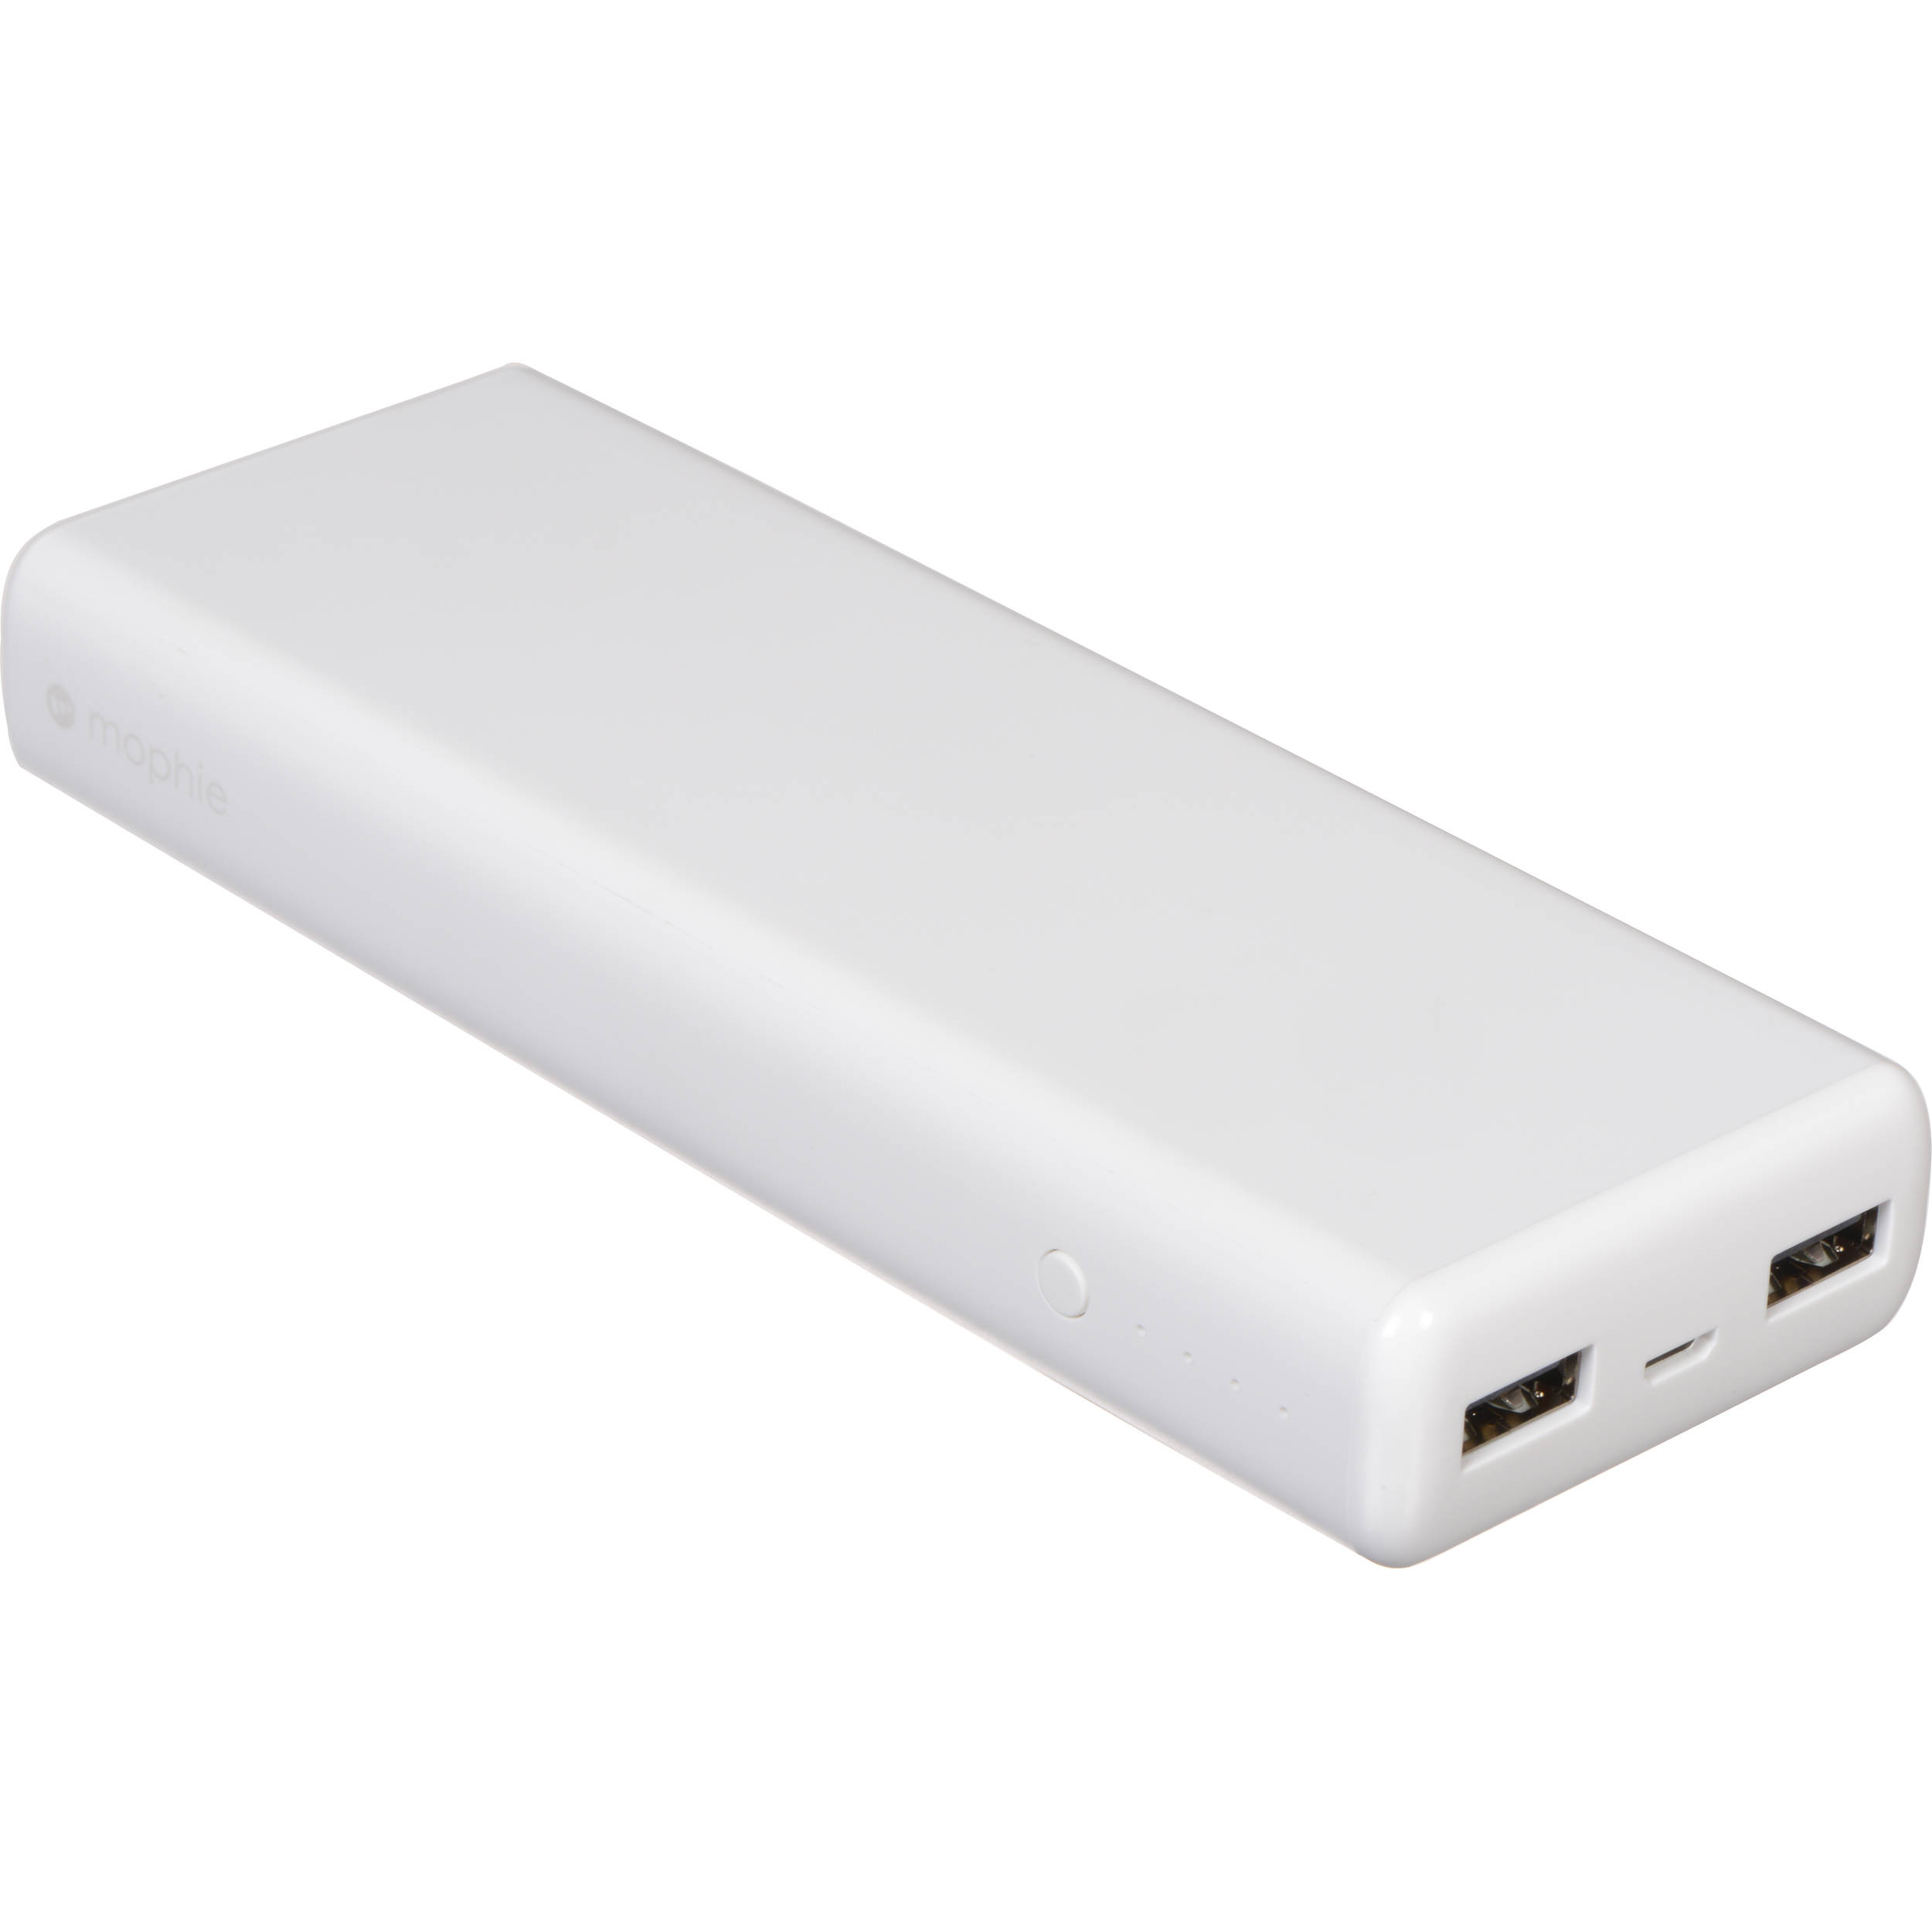 newest db4b1 95851 mophie power boost XL 10,400mAh Dual USB Portable Battery Pack (White)